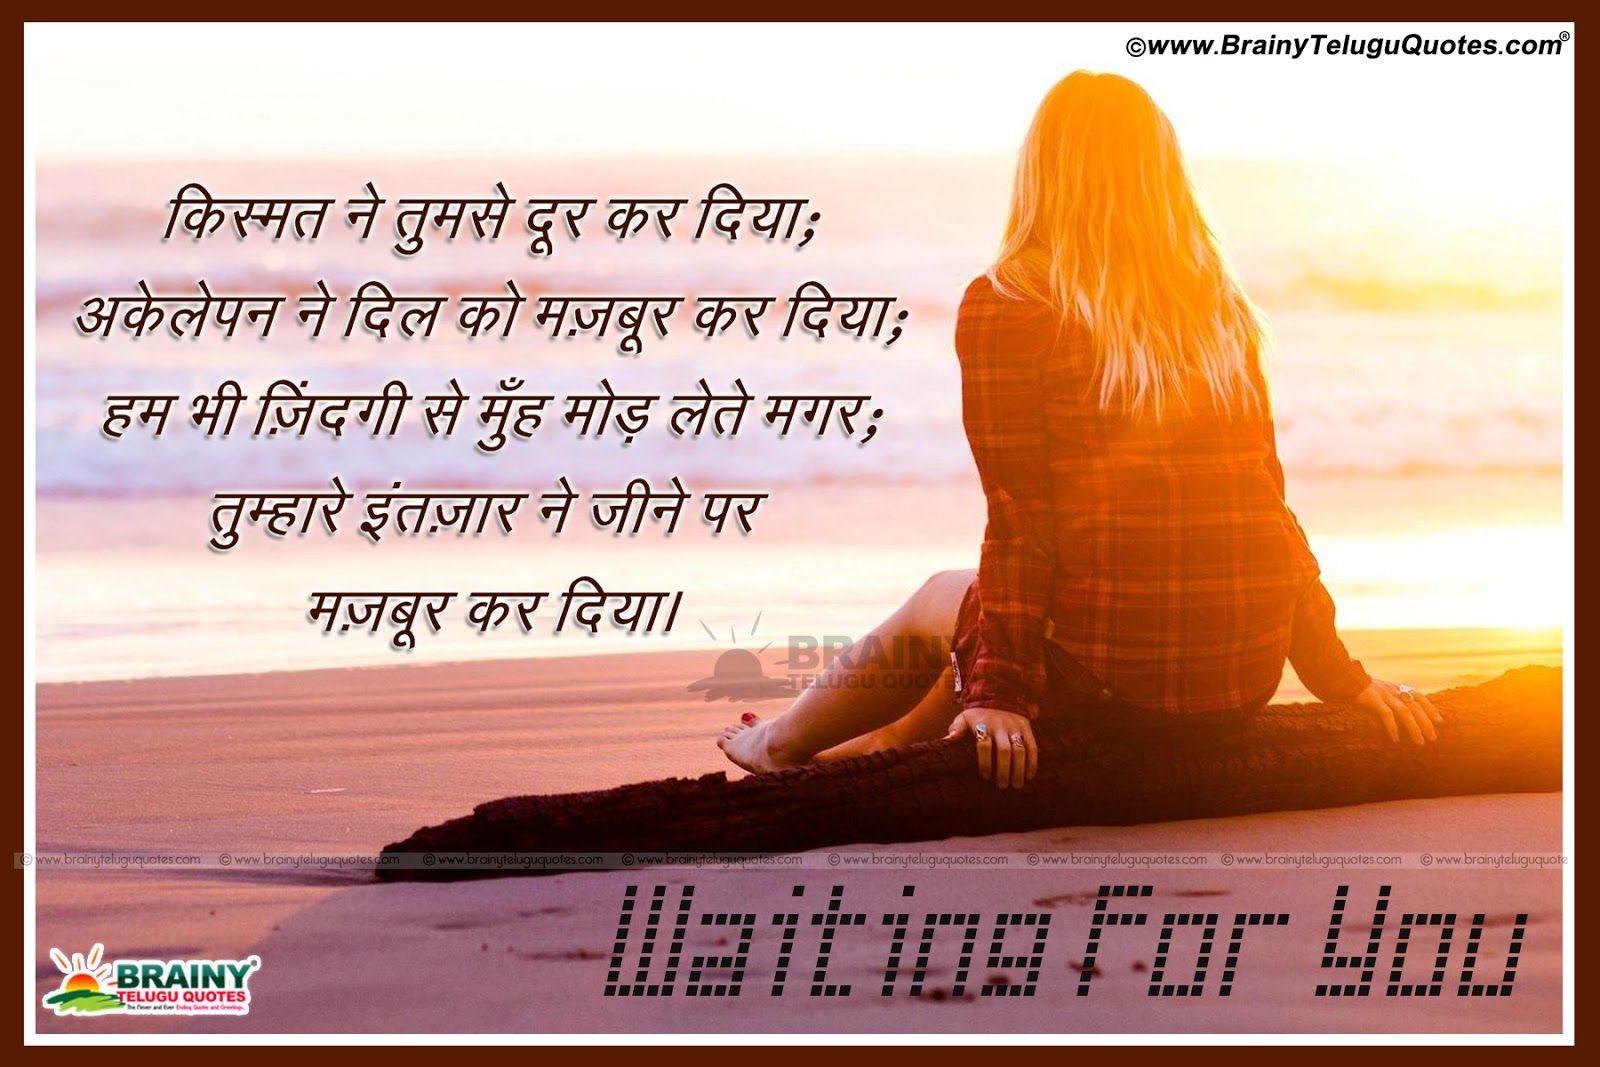 50 Best I Love You Images Collection For Whatsapp: Heart Touching Hindi Lines & Quotes, Unique Shayari's